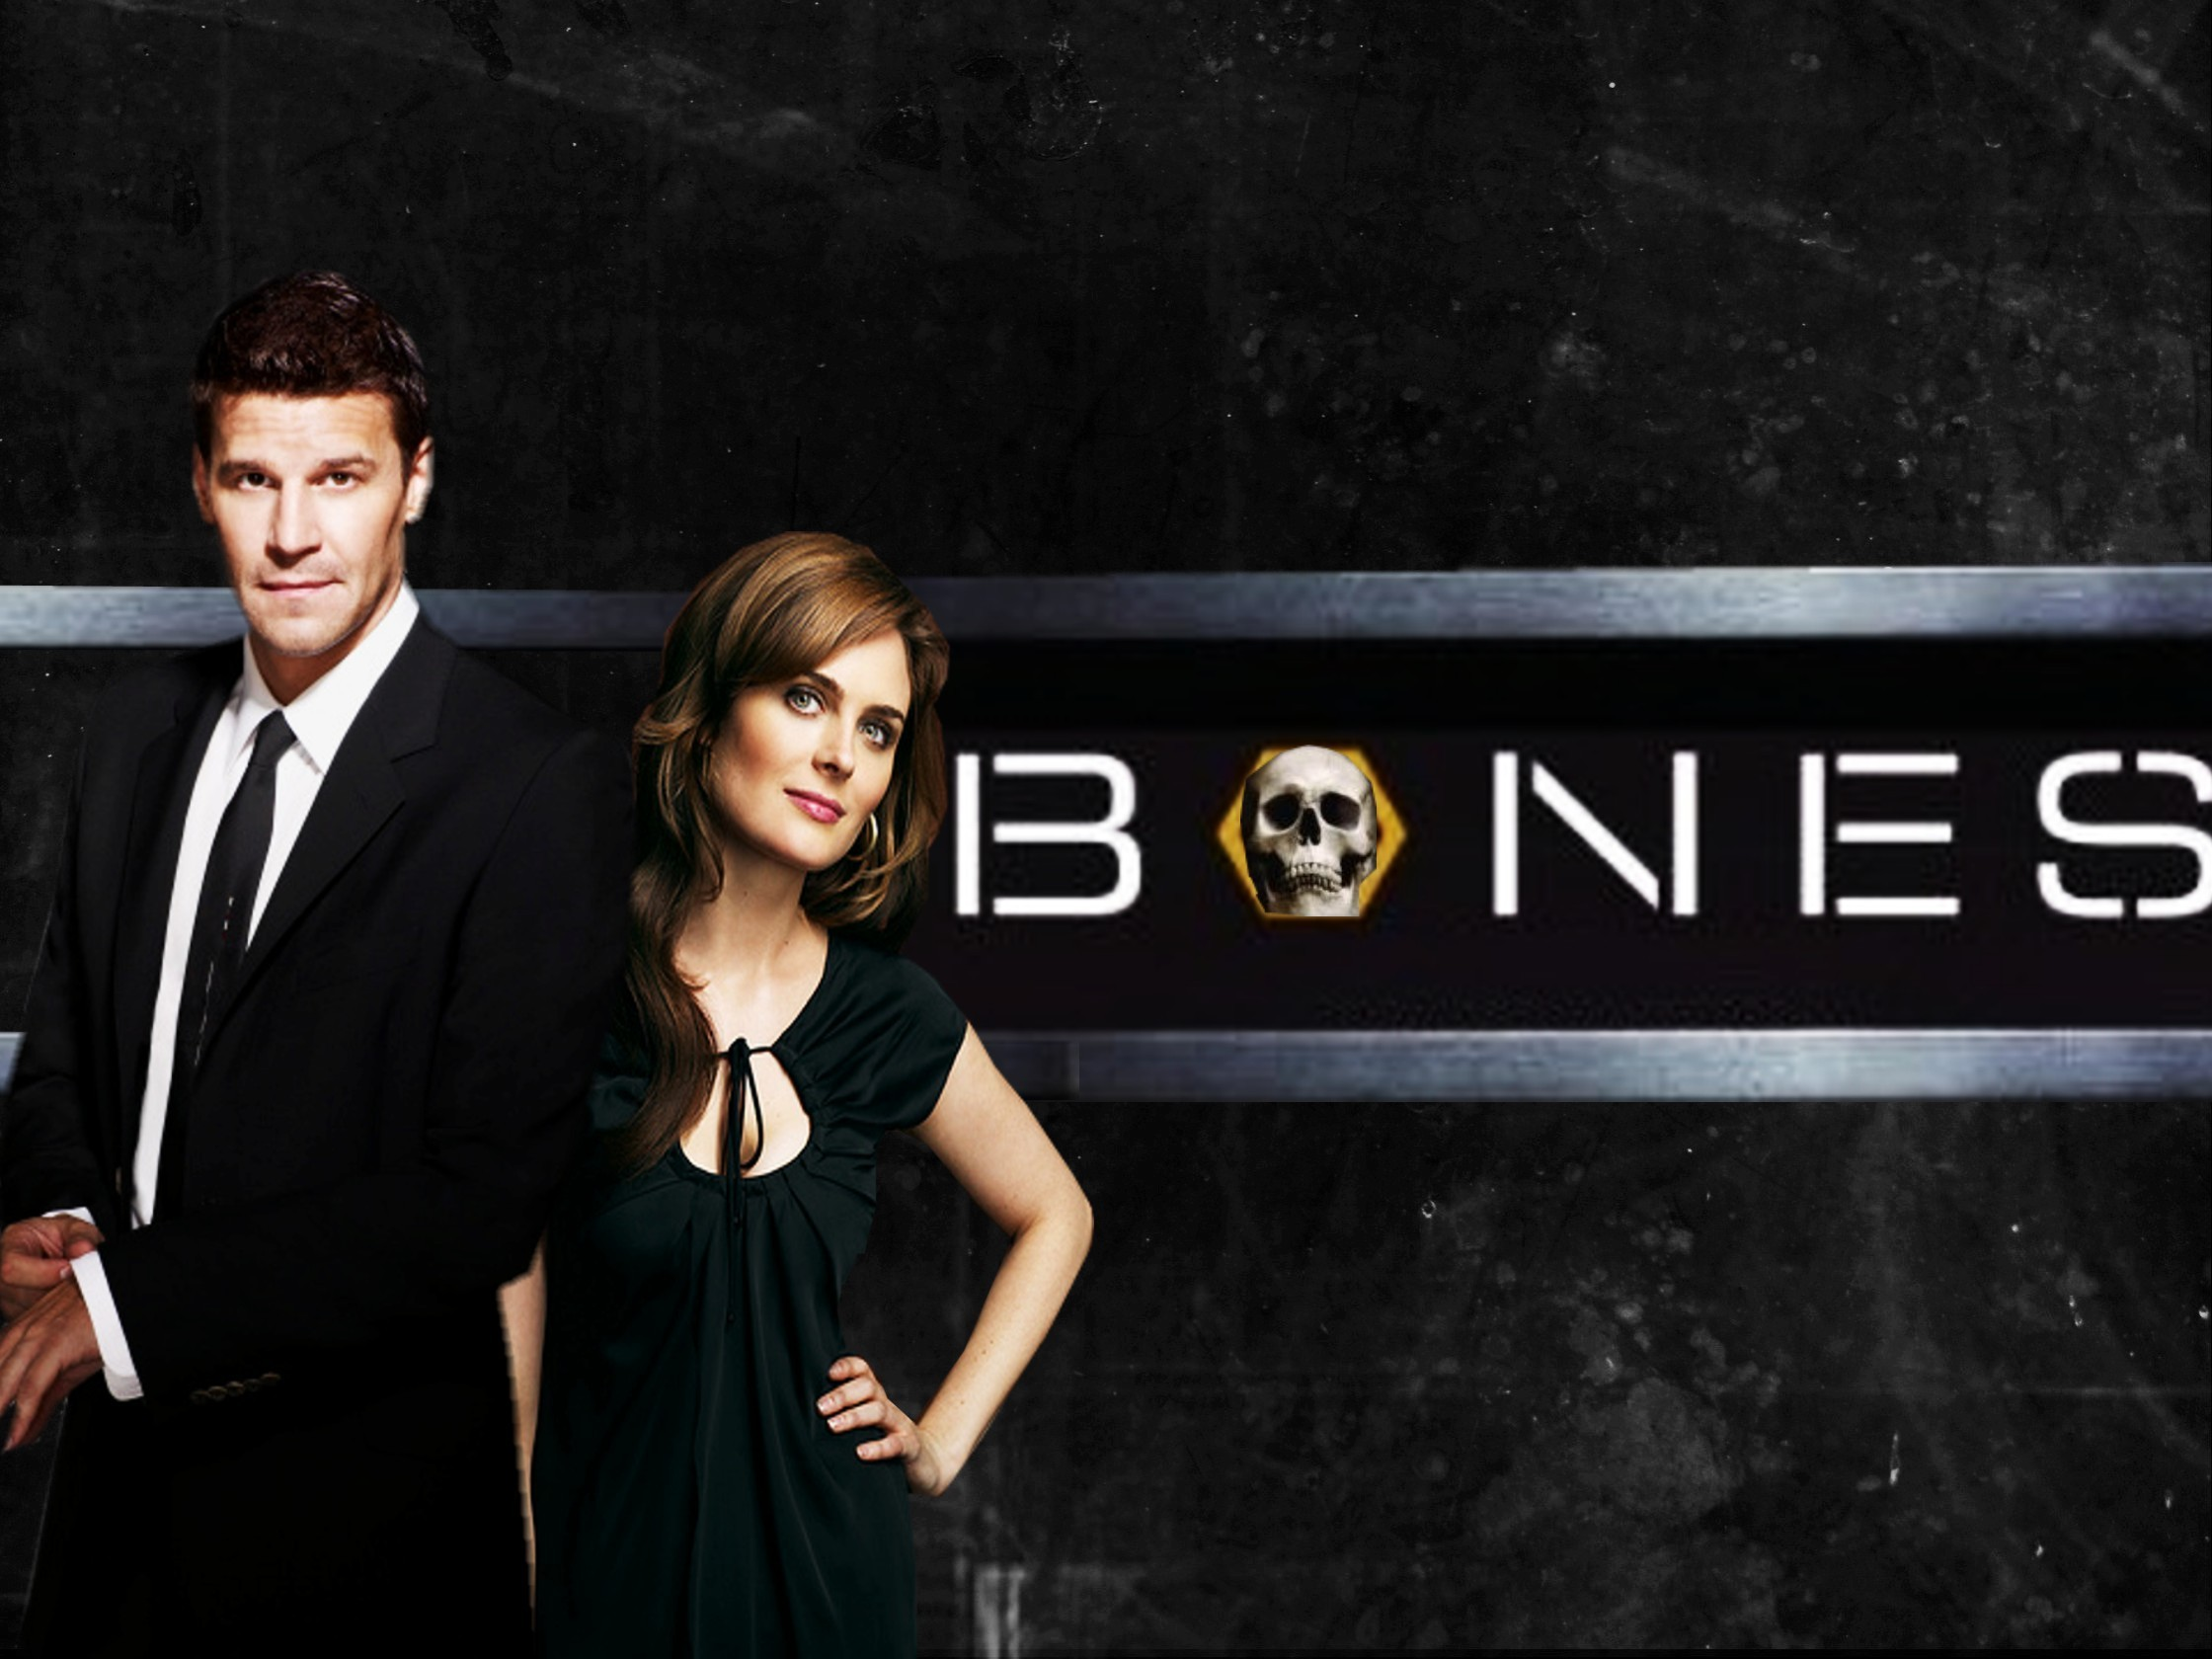 Bones - Bones Wallpape...